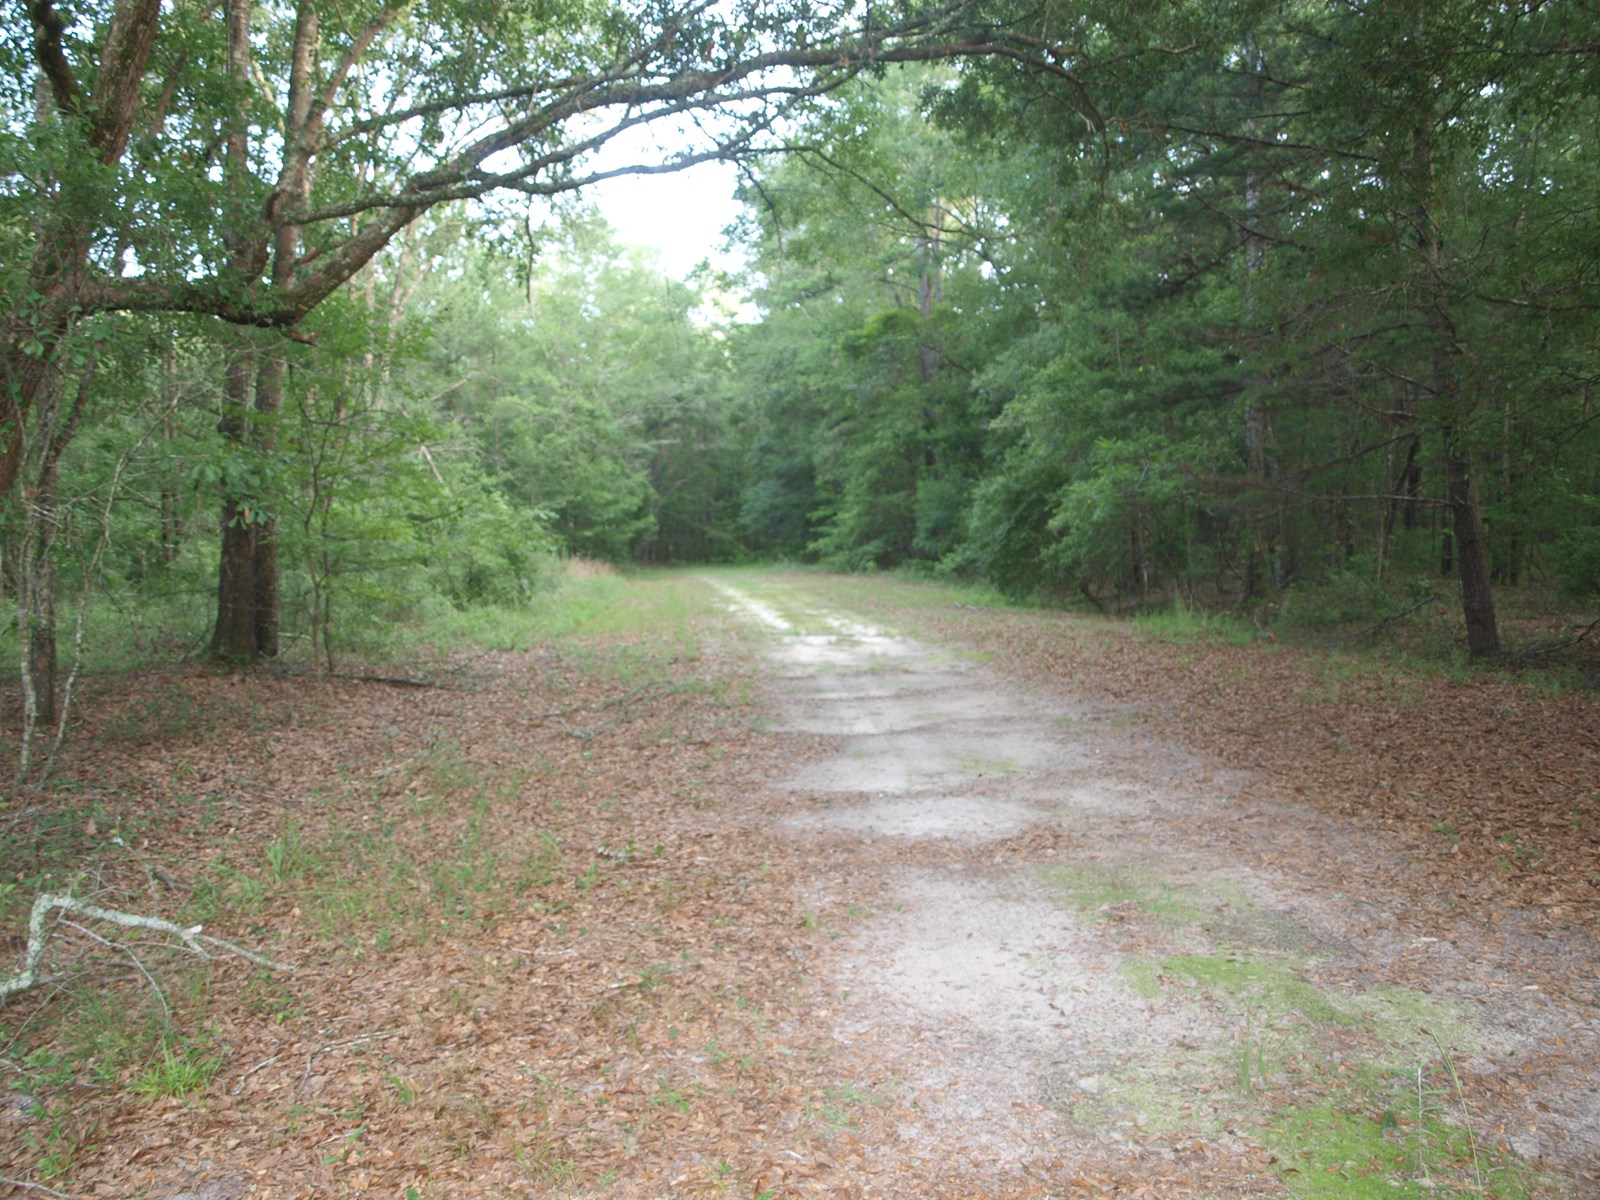 00 DEERWOOD BLVD NORTH FLORIDA HUNTING TRACT + CAMPER HOOKUP